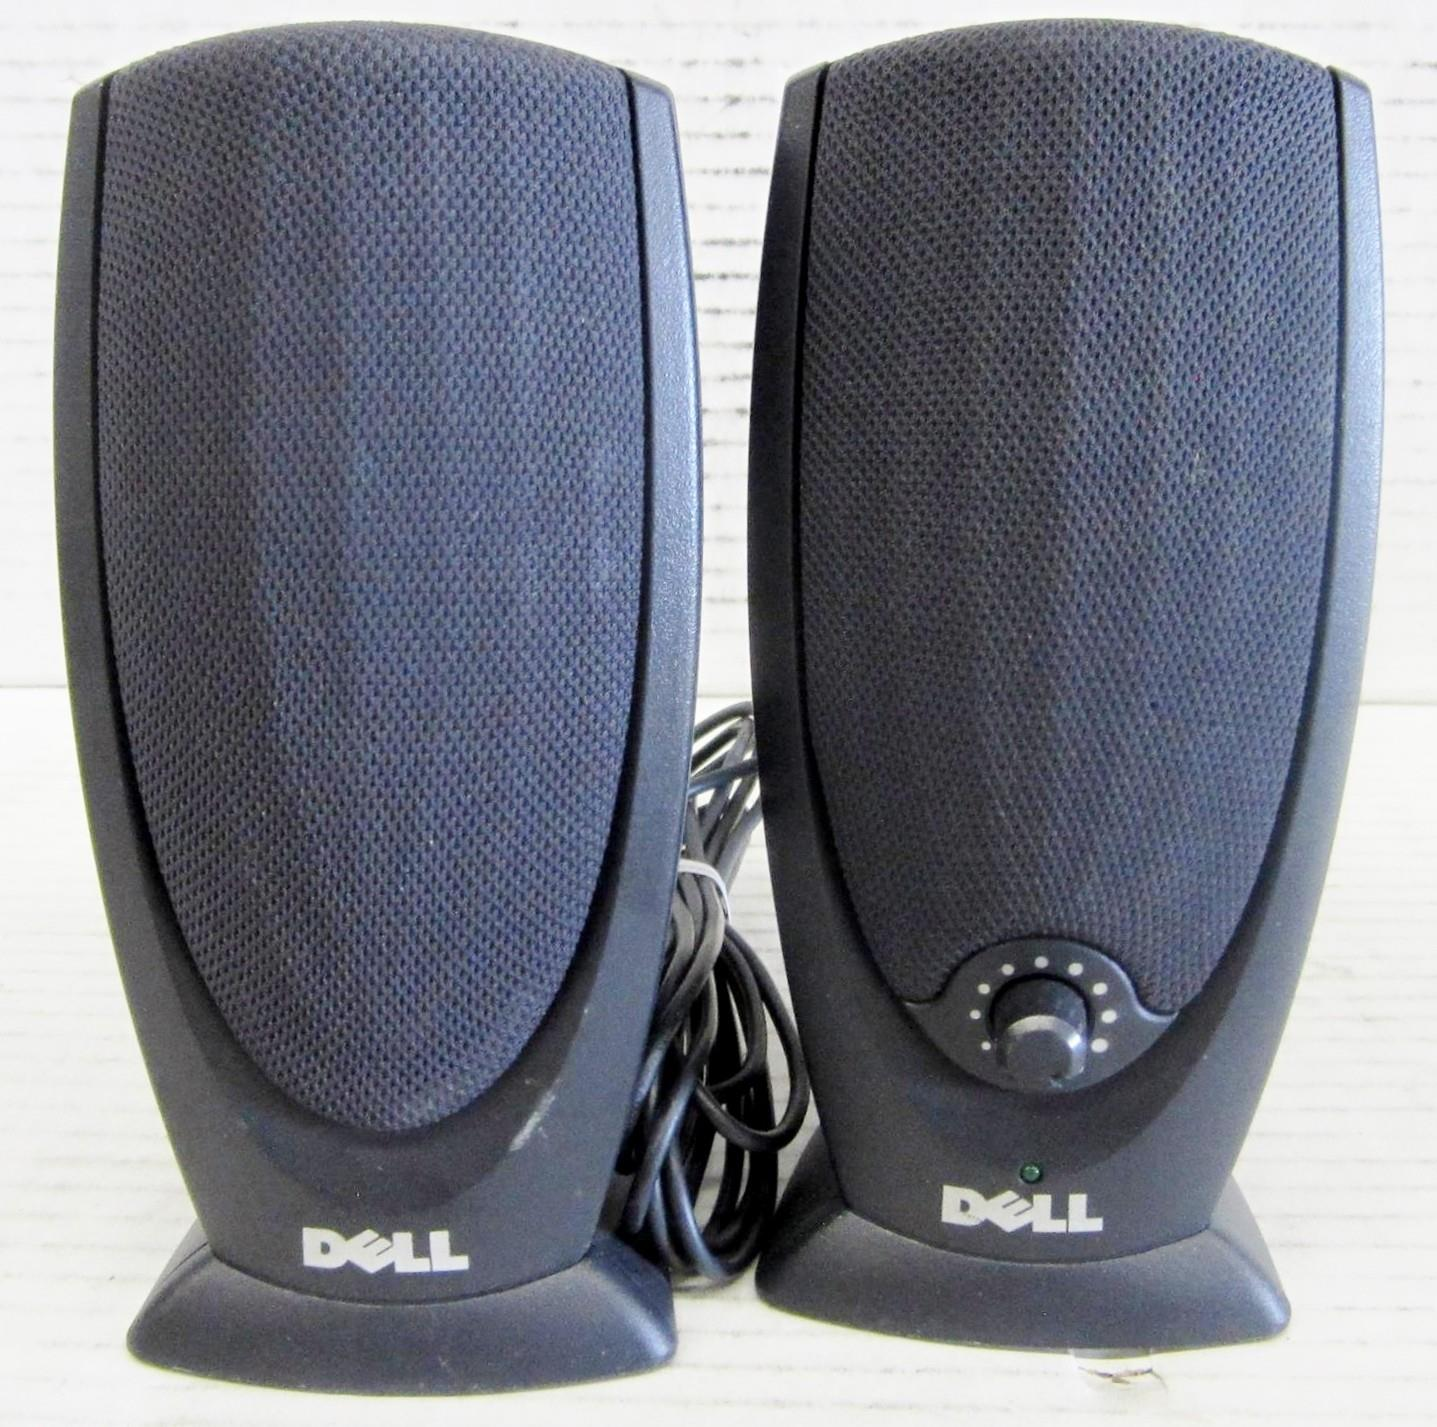 Dell Speakers A215 Drivers Download